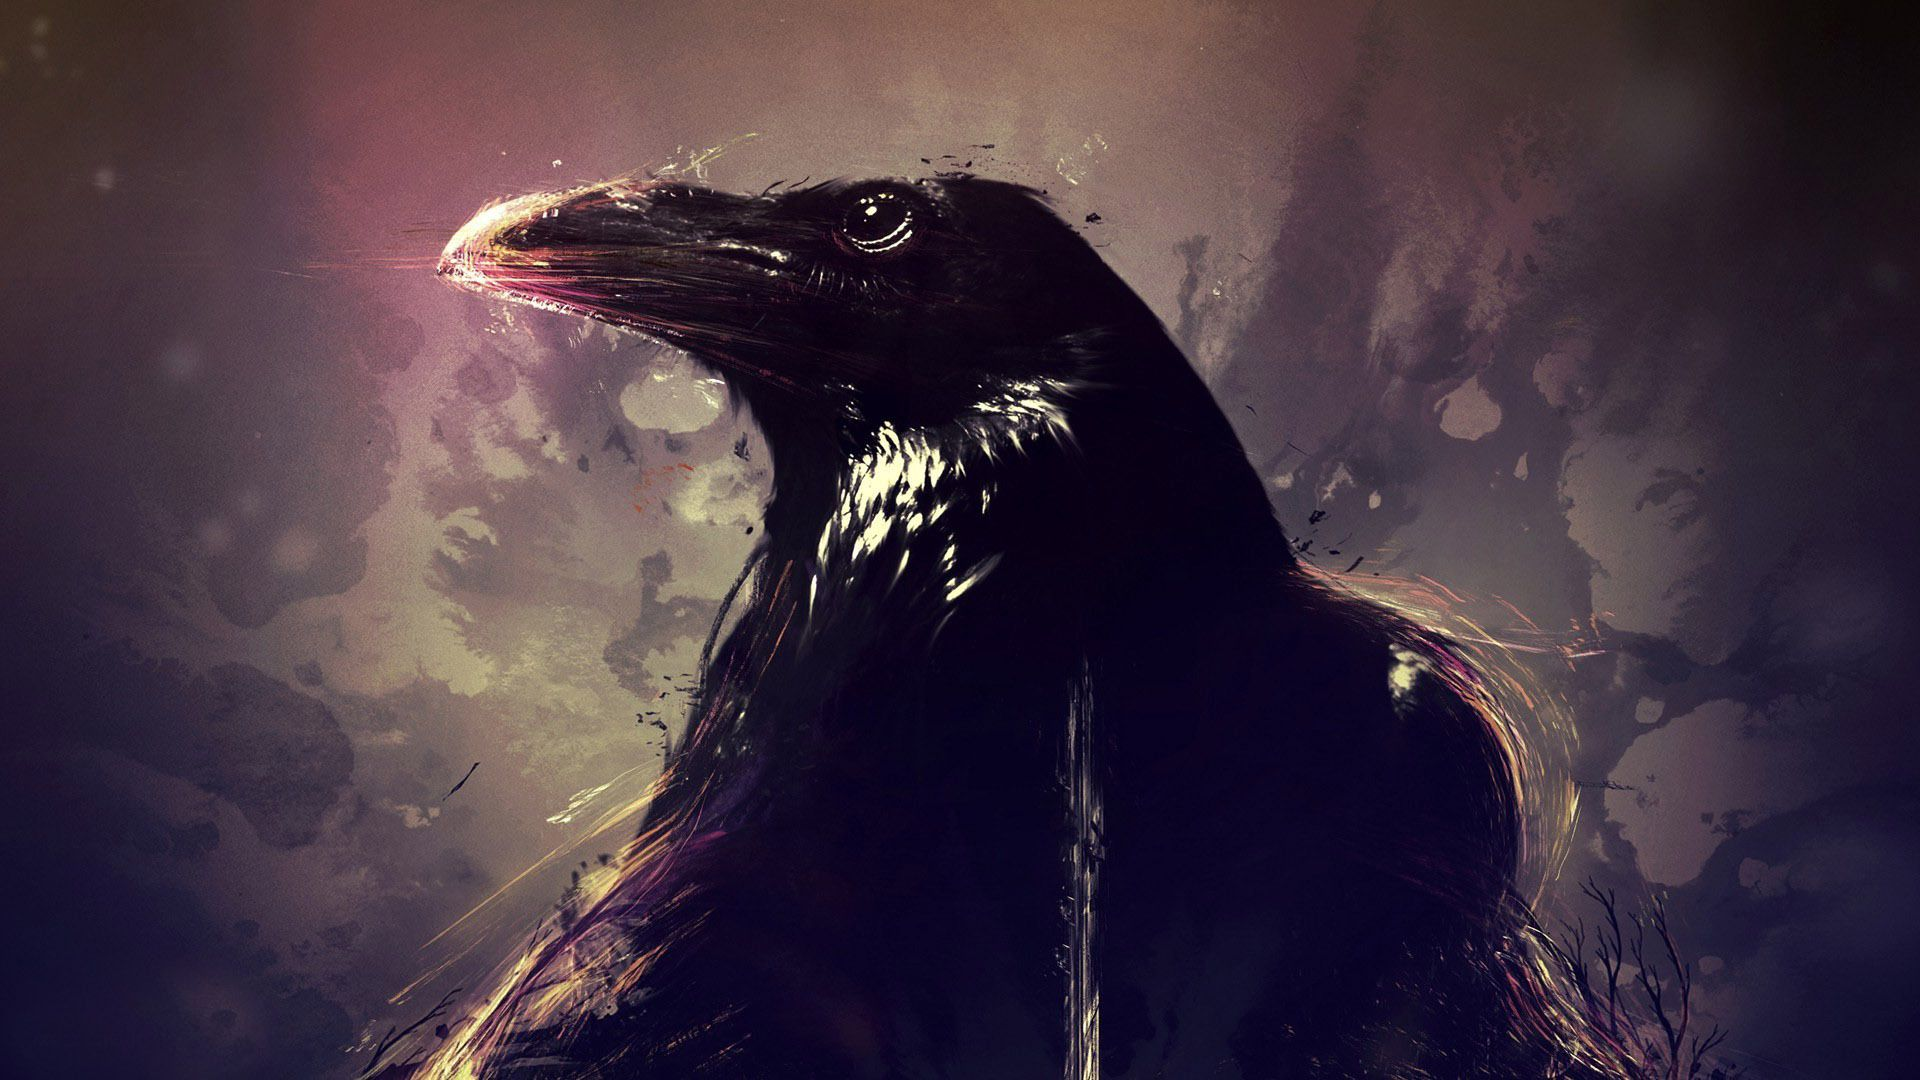 Free Download Crows Wallpapers